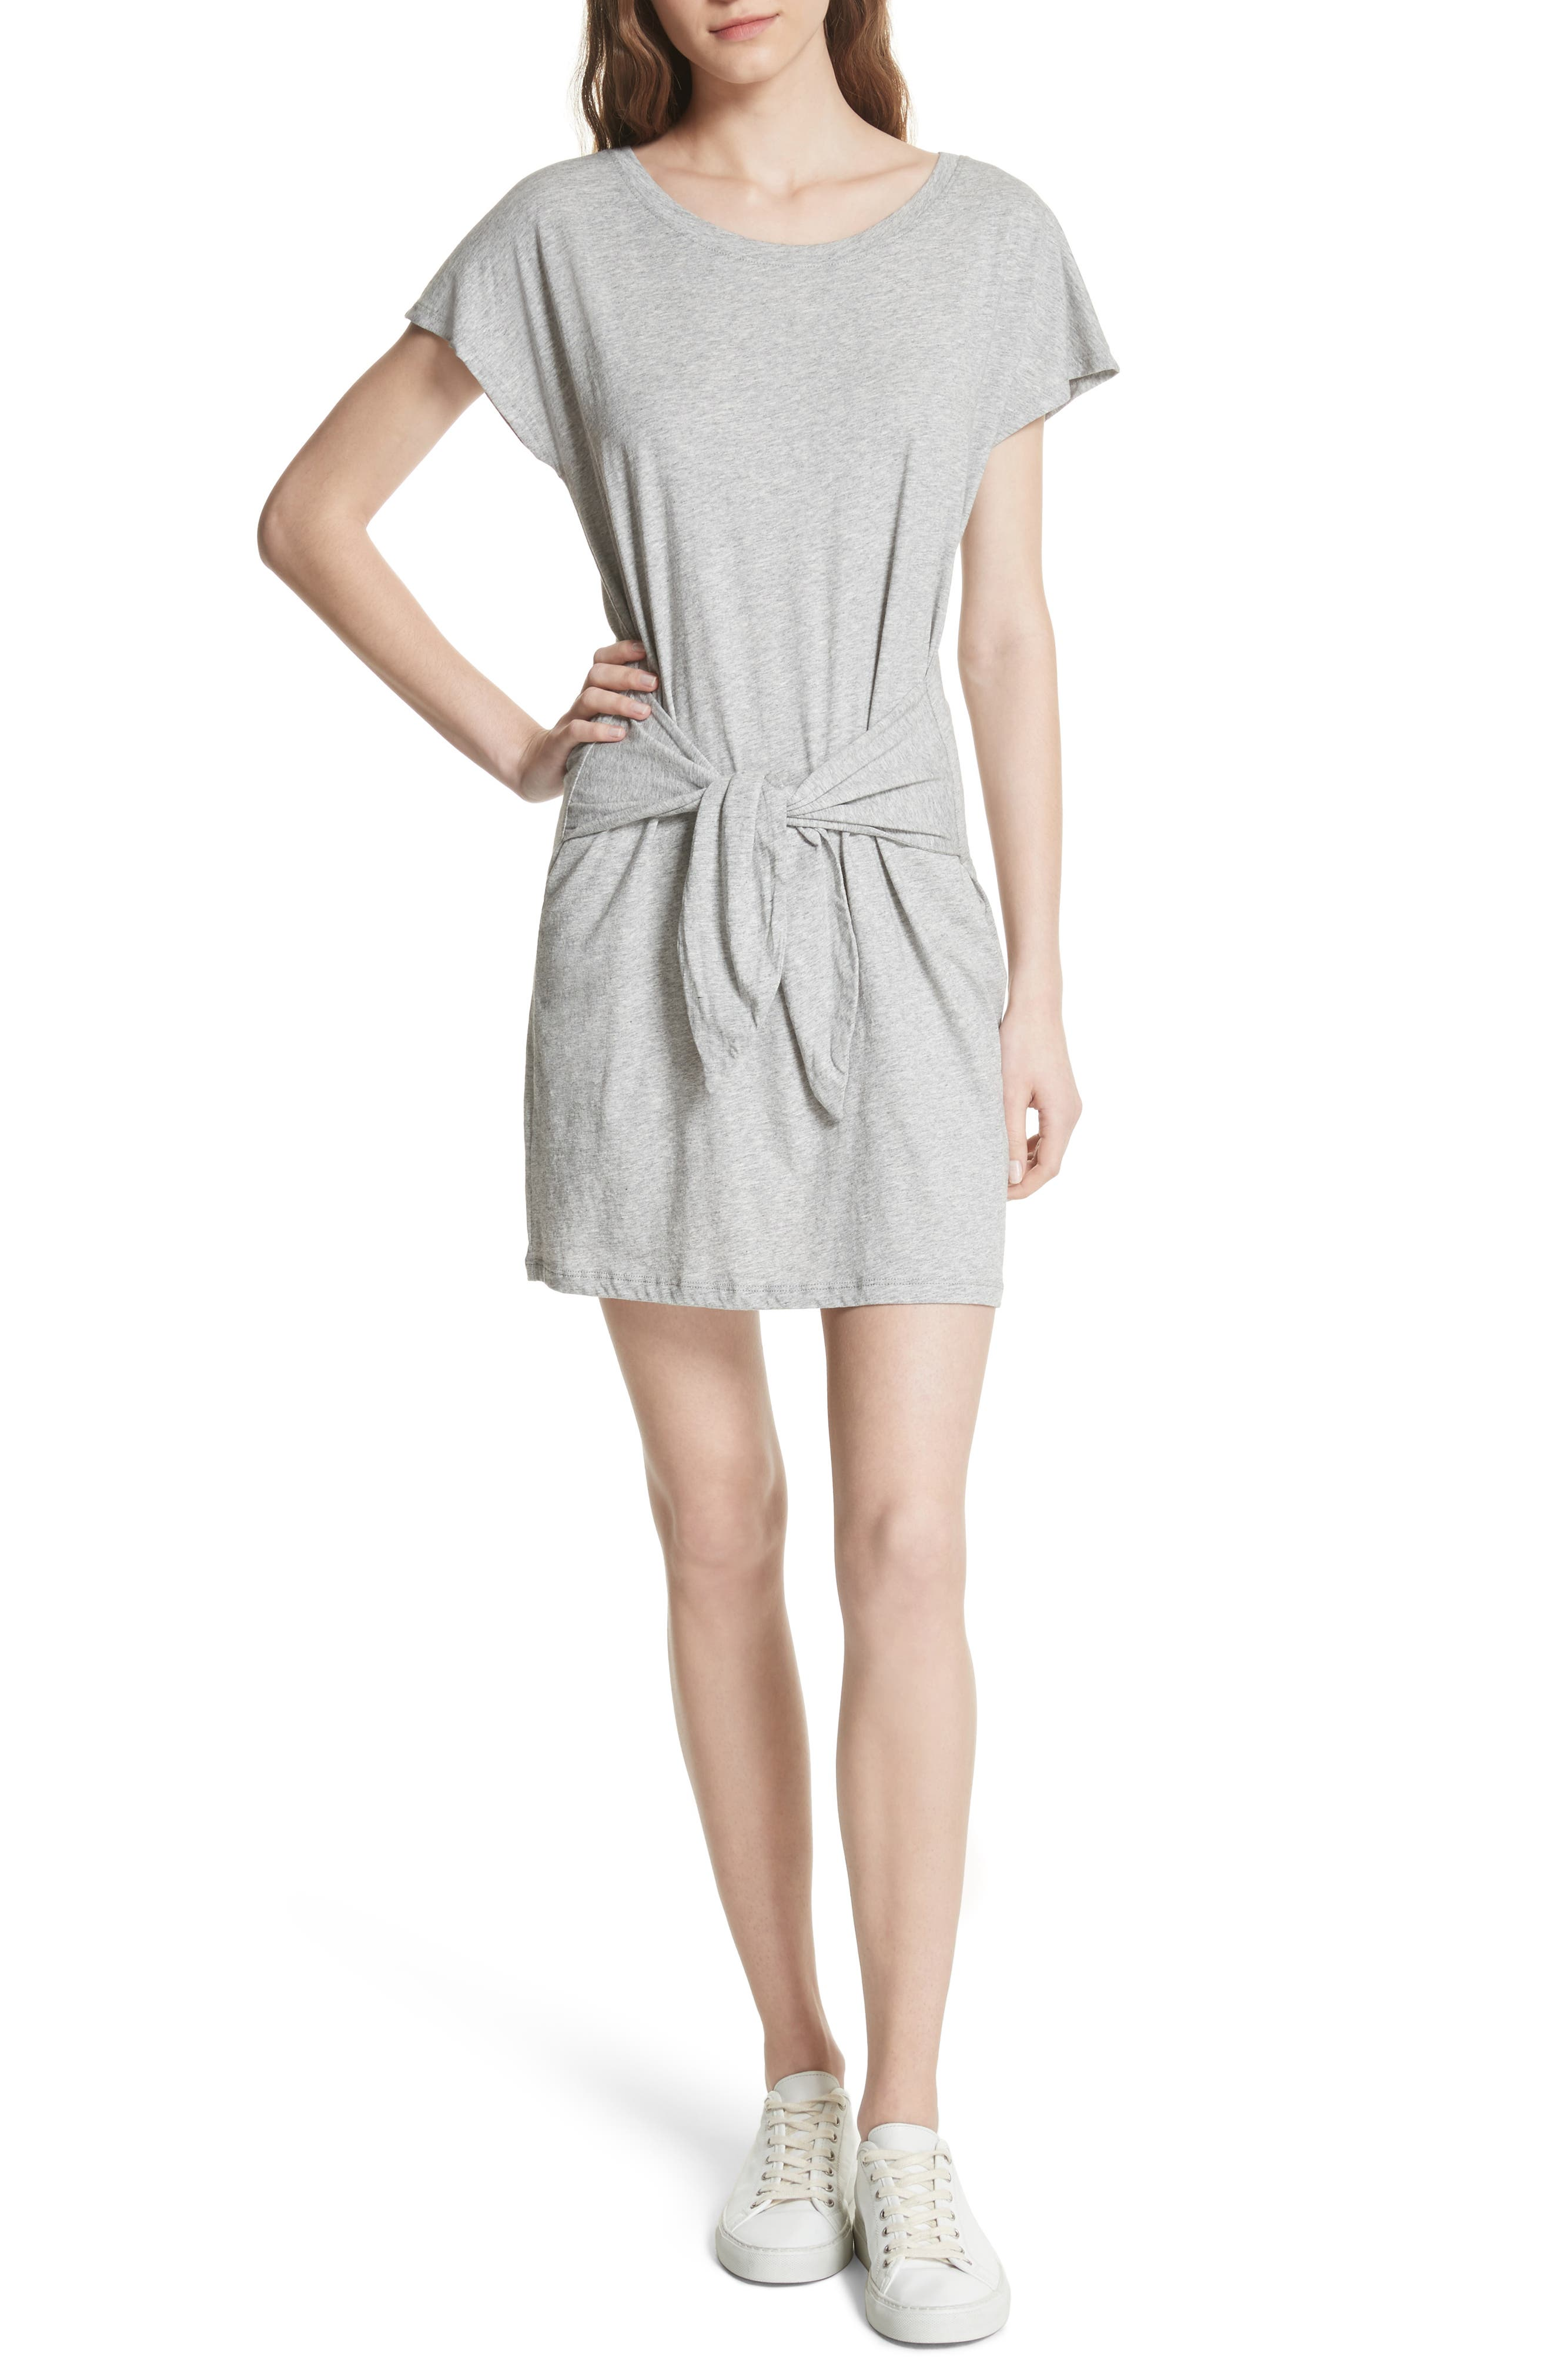 Alyra Tie Waist Cotton T-Shirt Dress,                             Main thumbnail 1, color,                             Heather Grey